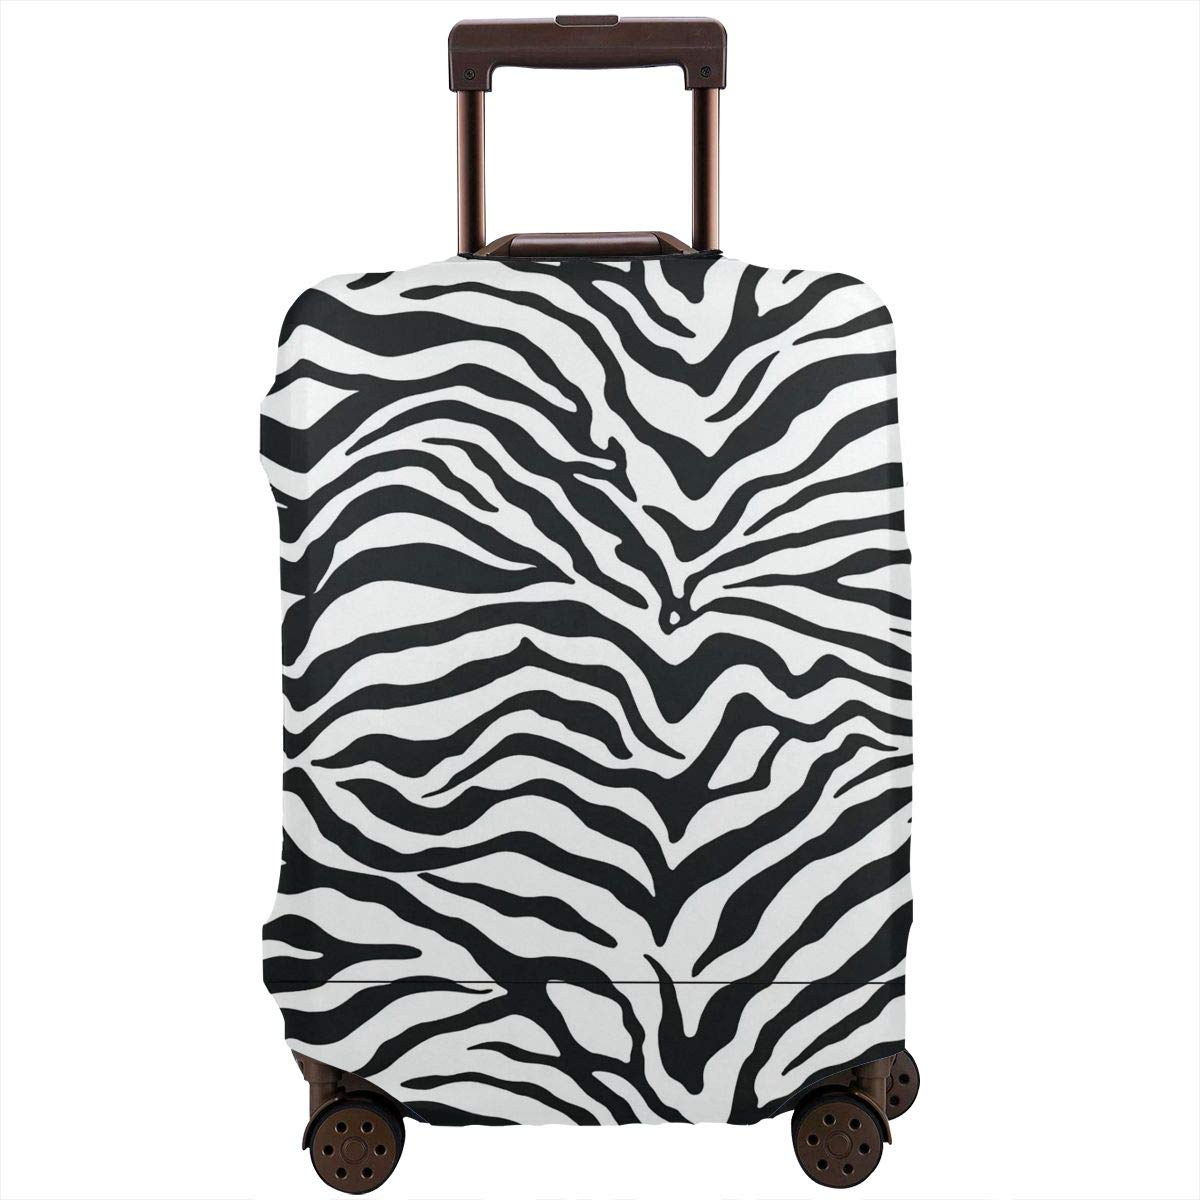 4 Size Black And White Zebra Print Tattoo Printed Business Luggage Protector Travel Baggage Suitcase Cover